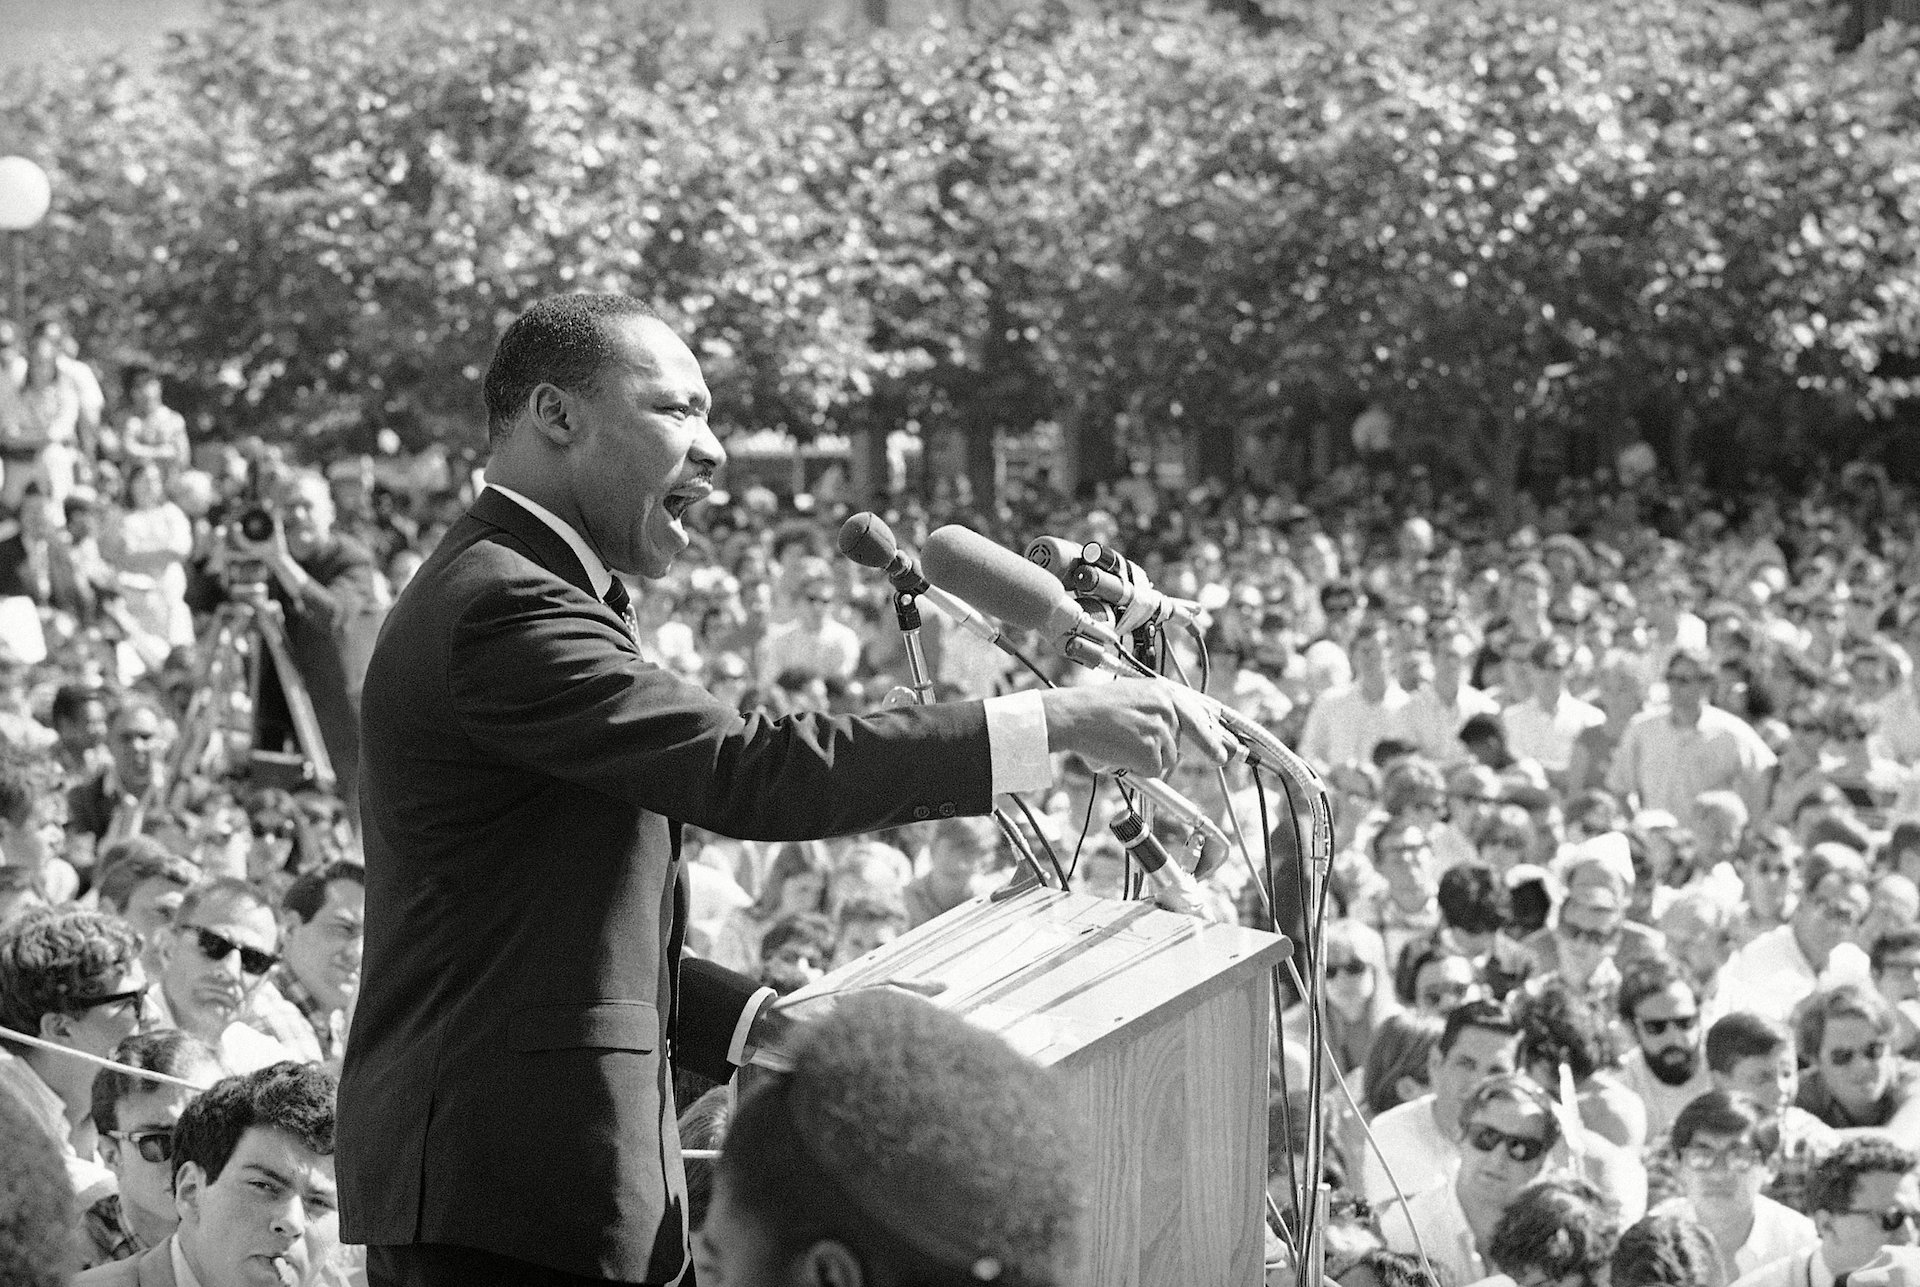 Martin Luther King Jr. Day: TV Shows on Systemic Racism